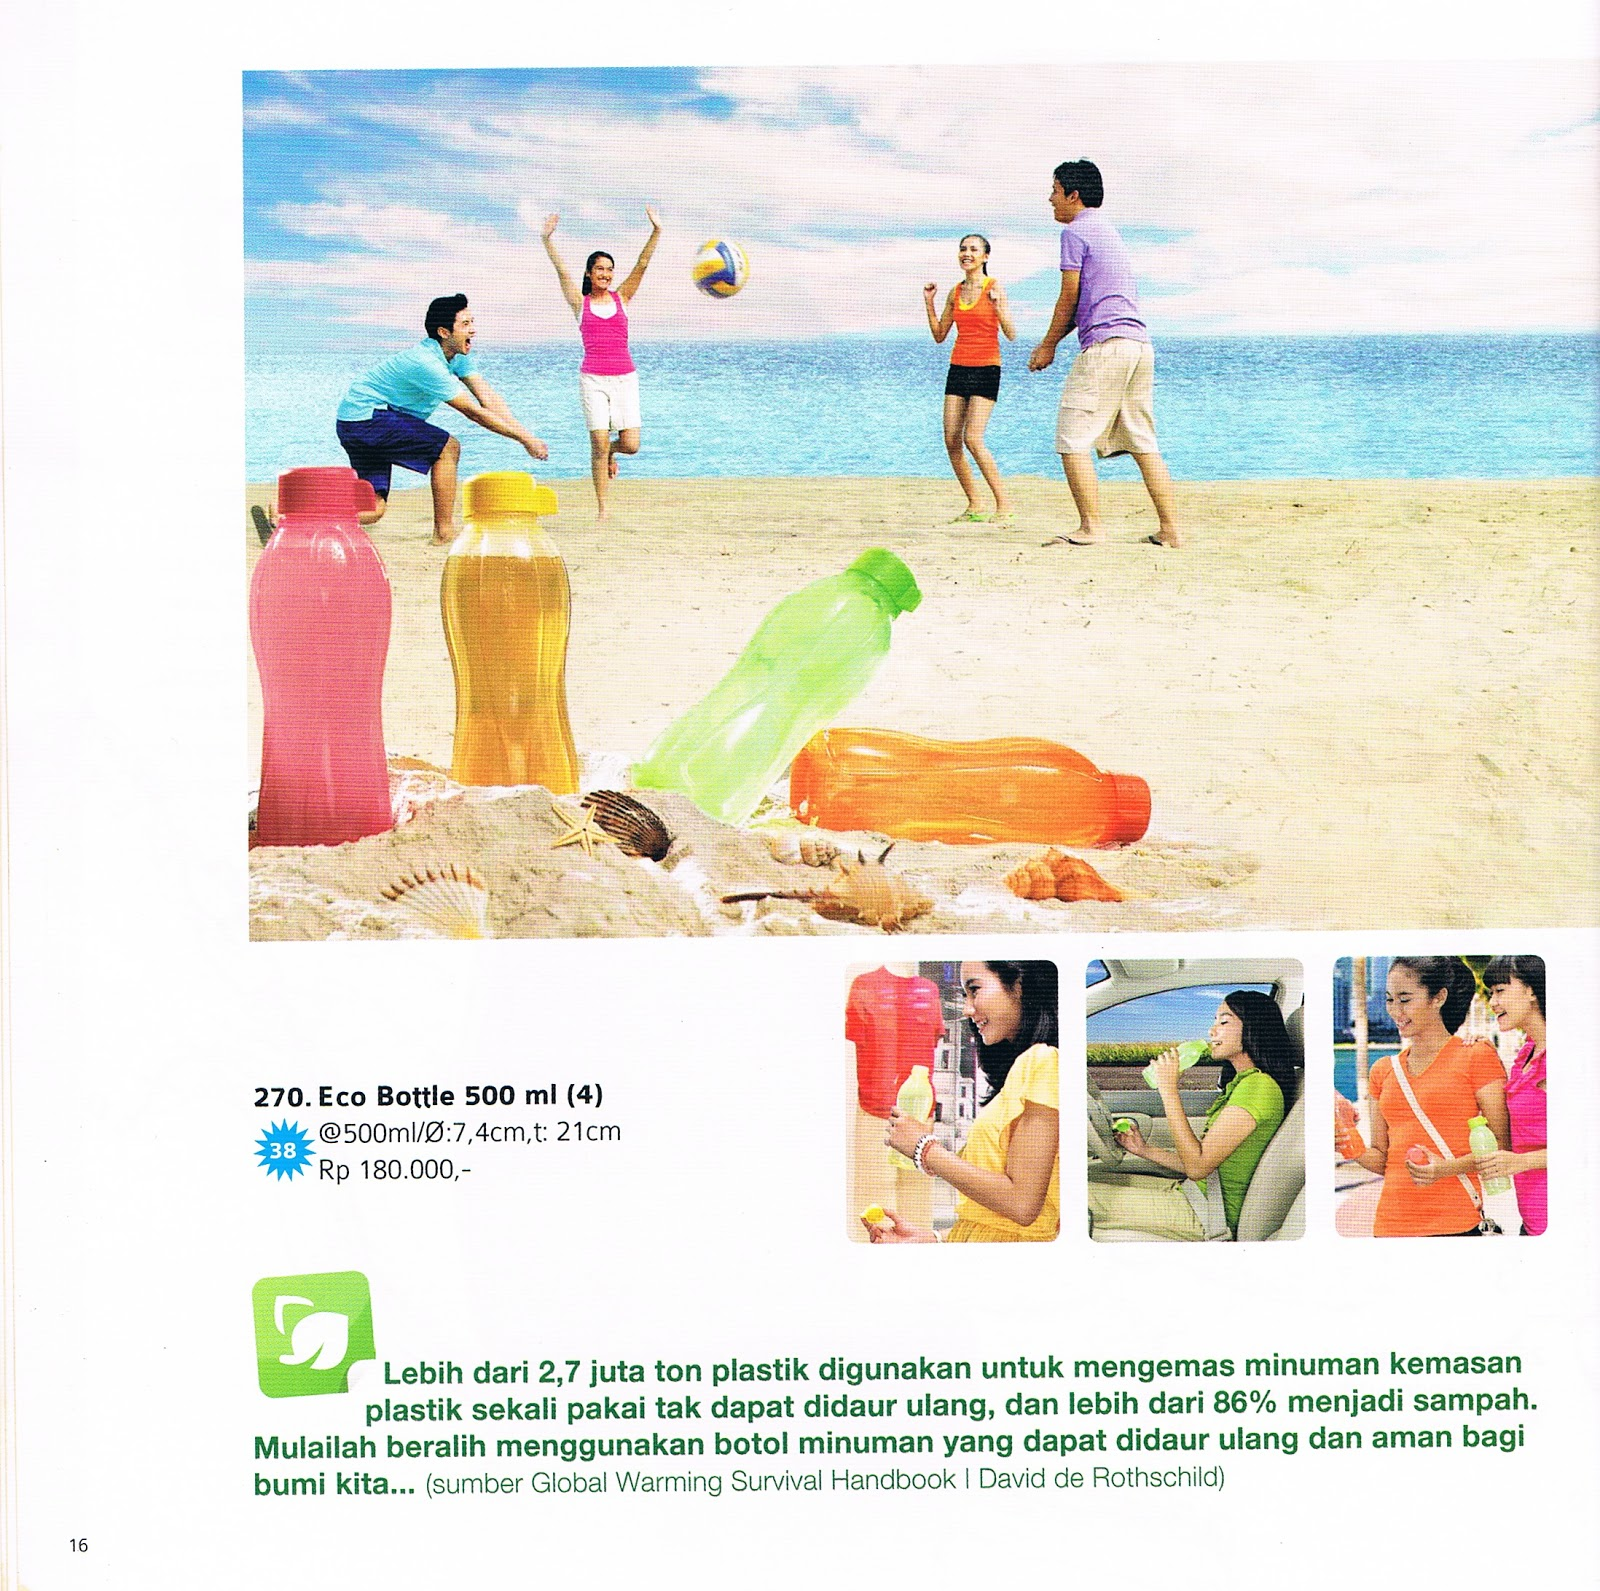 ALiaTupperware: Katalog Reguler Terbaru Tupperware November 2012